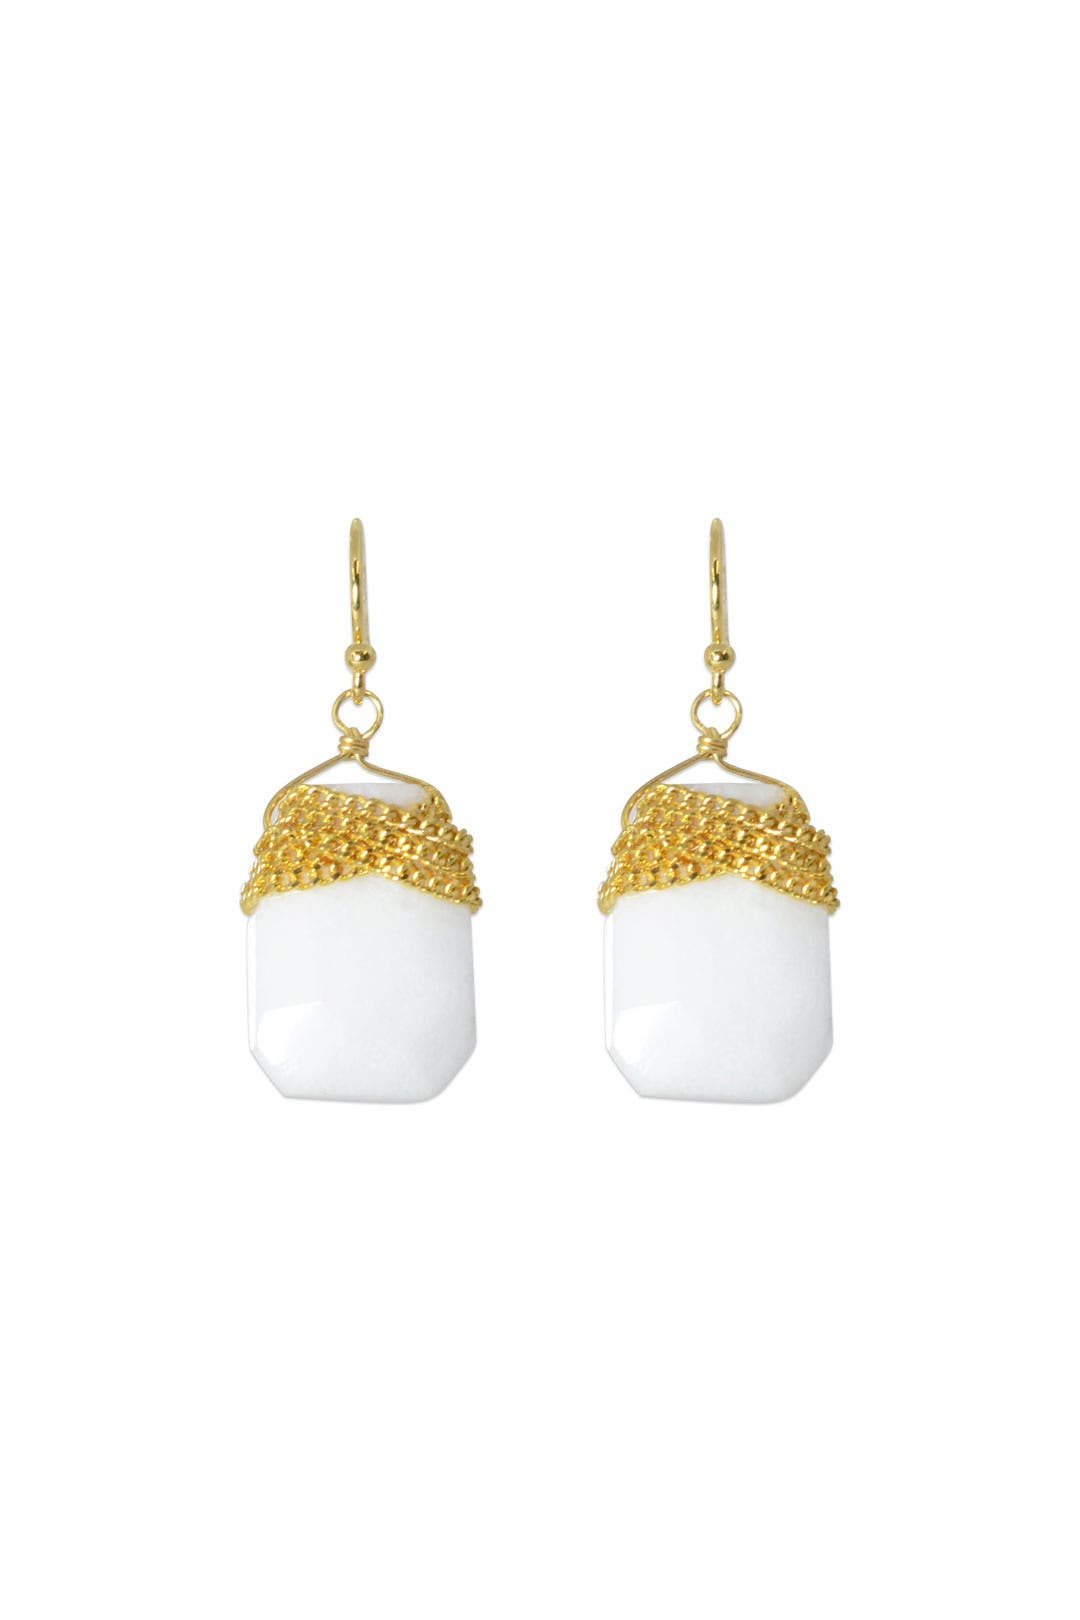 Pure Isis Earrings by AV Max